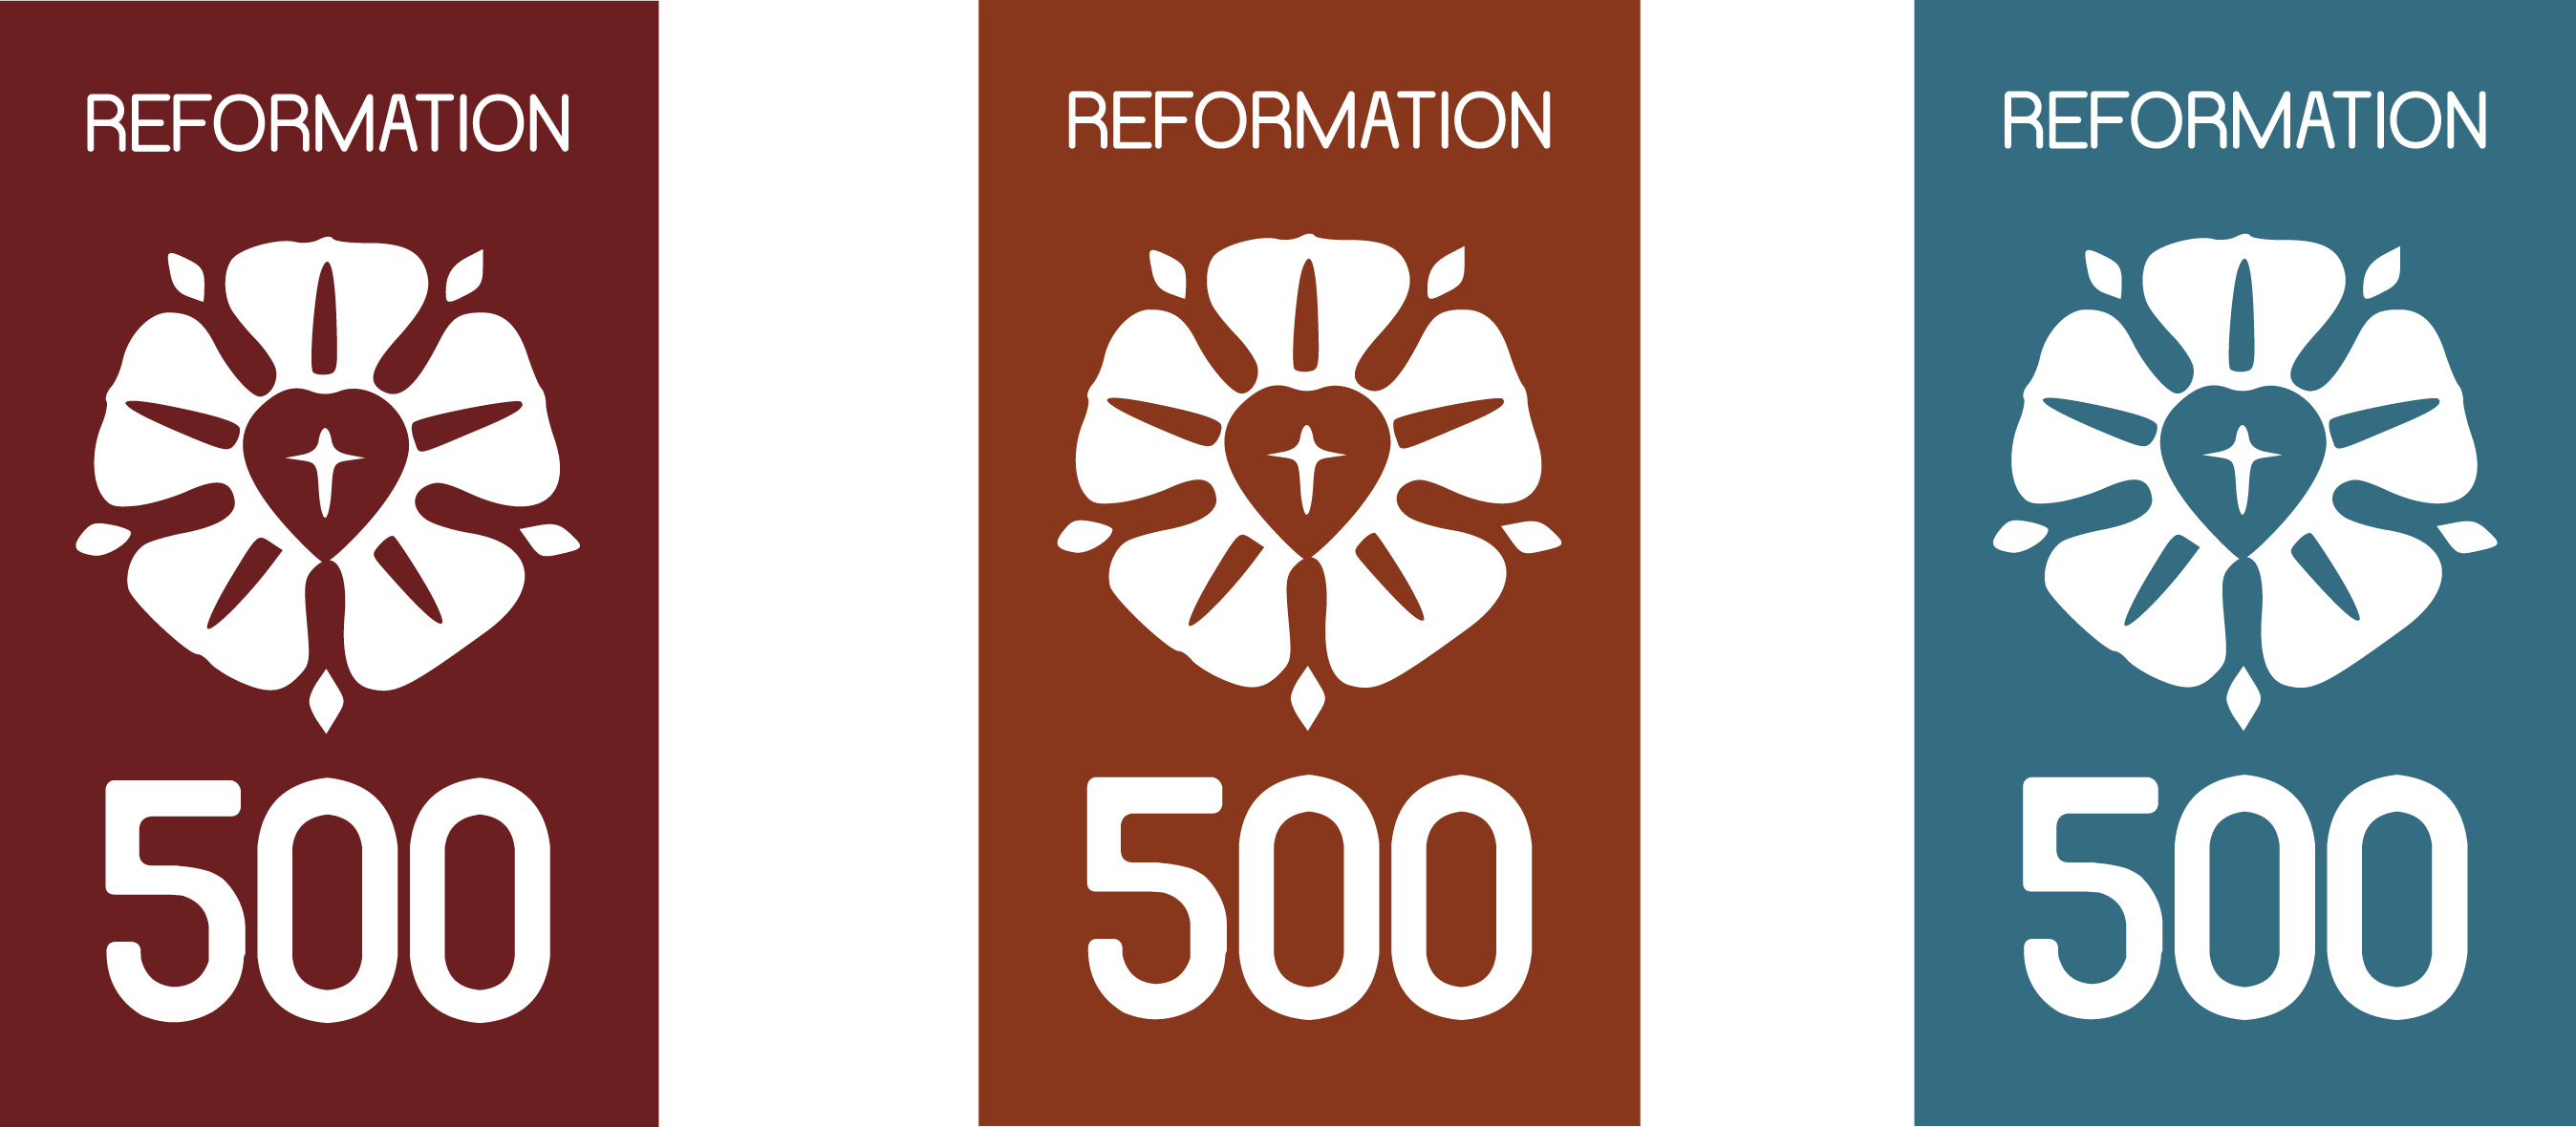 New Reformation500 Website